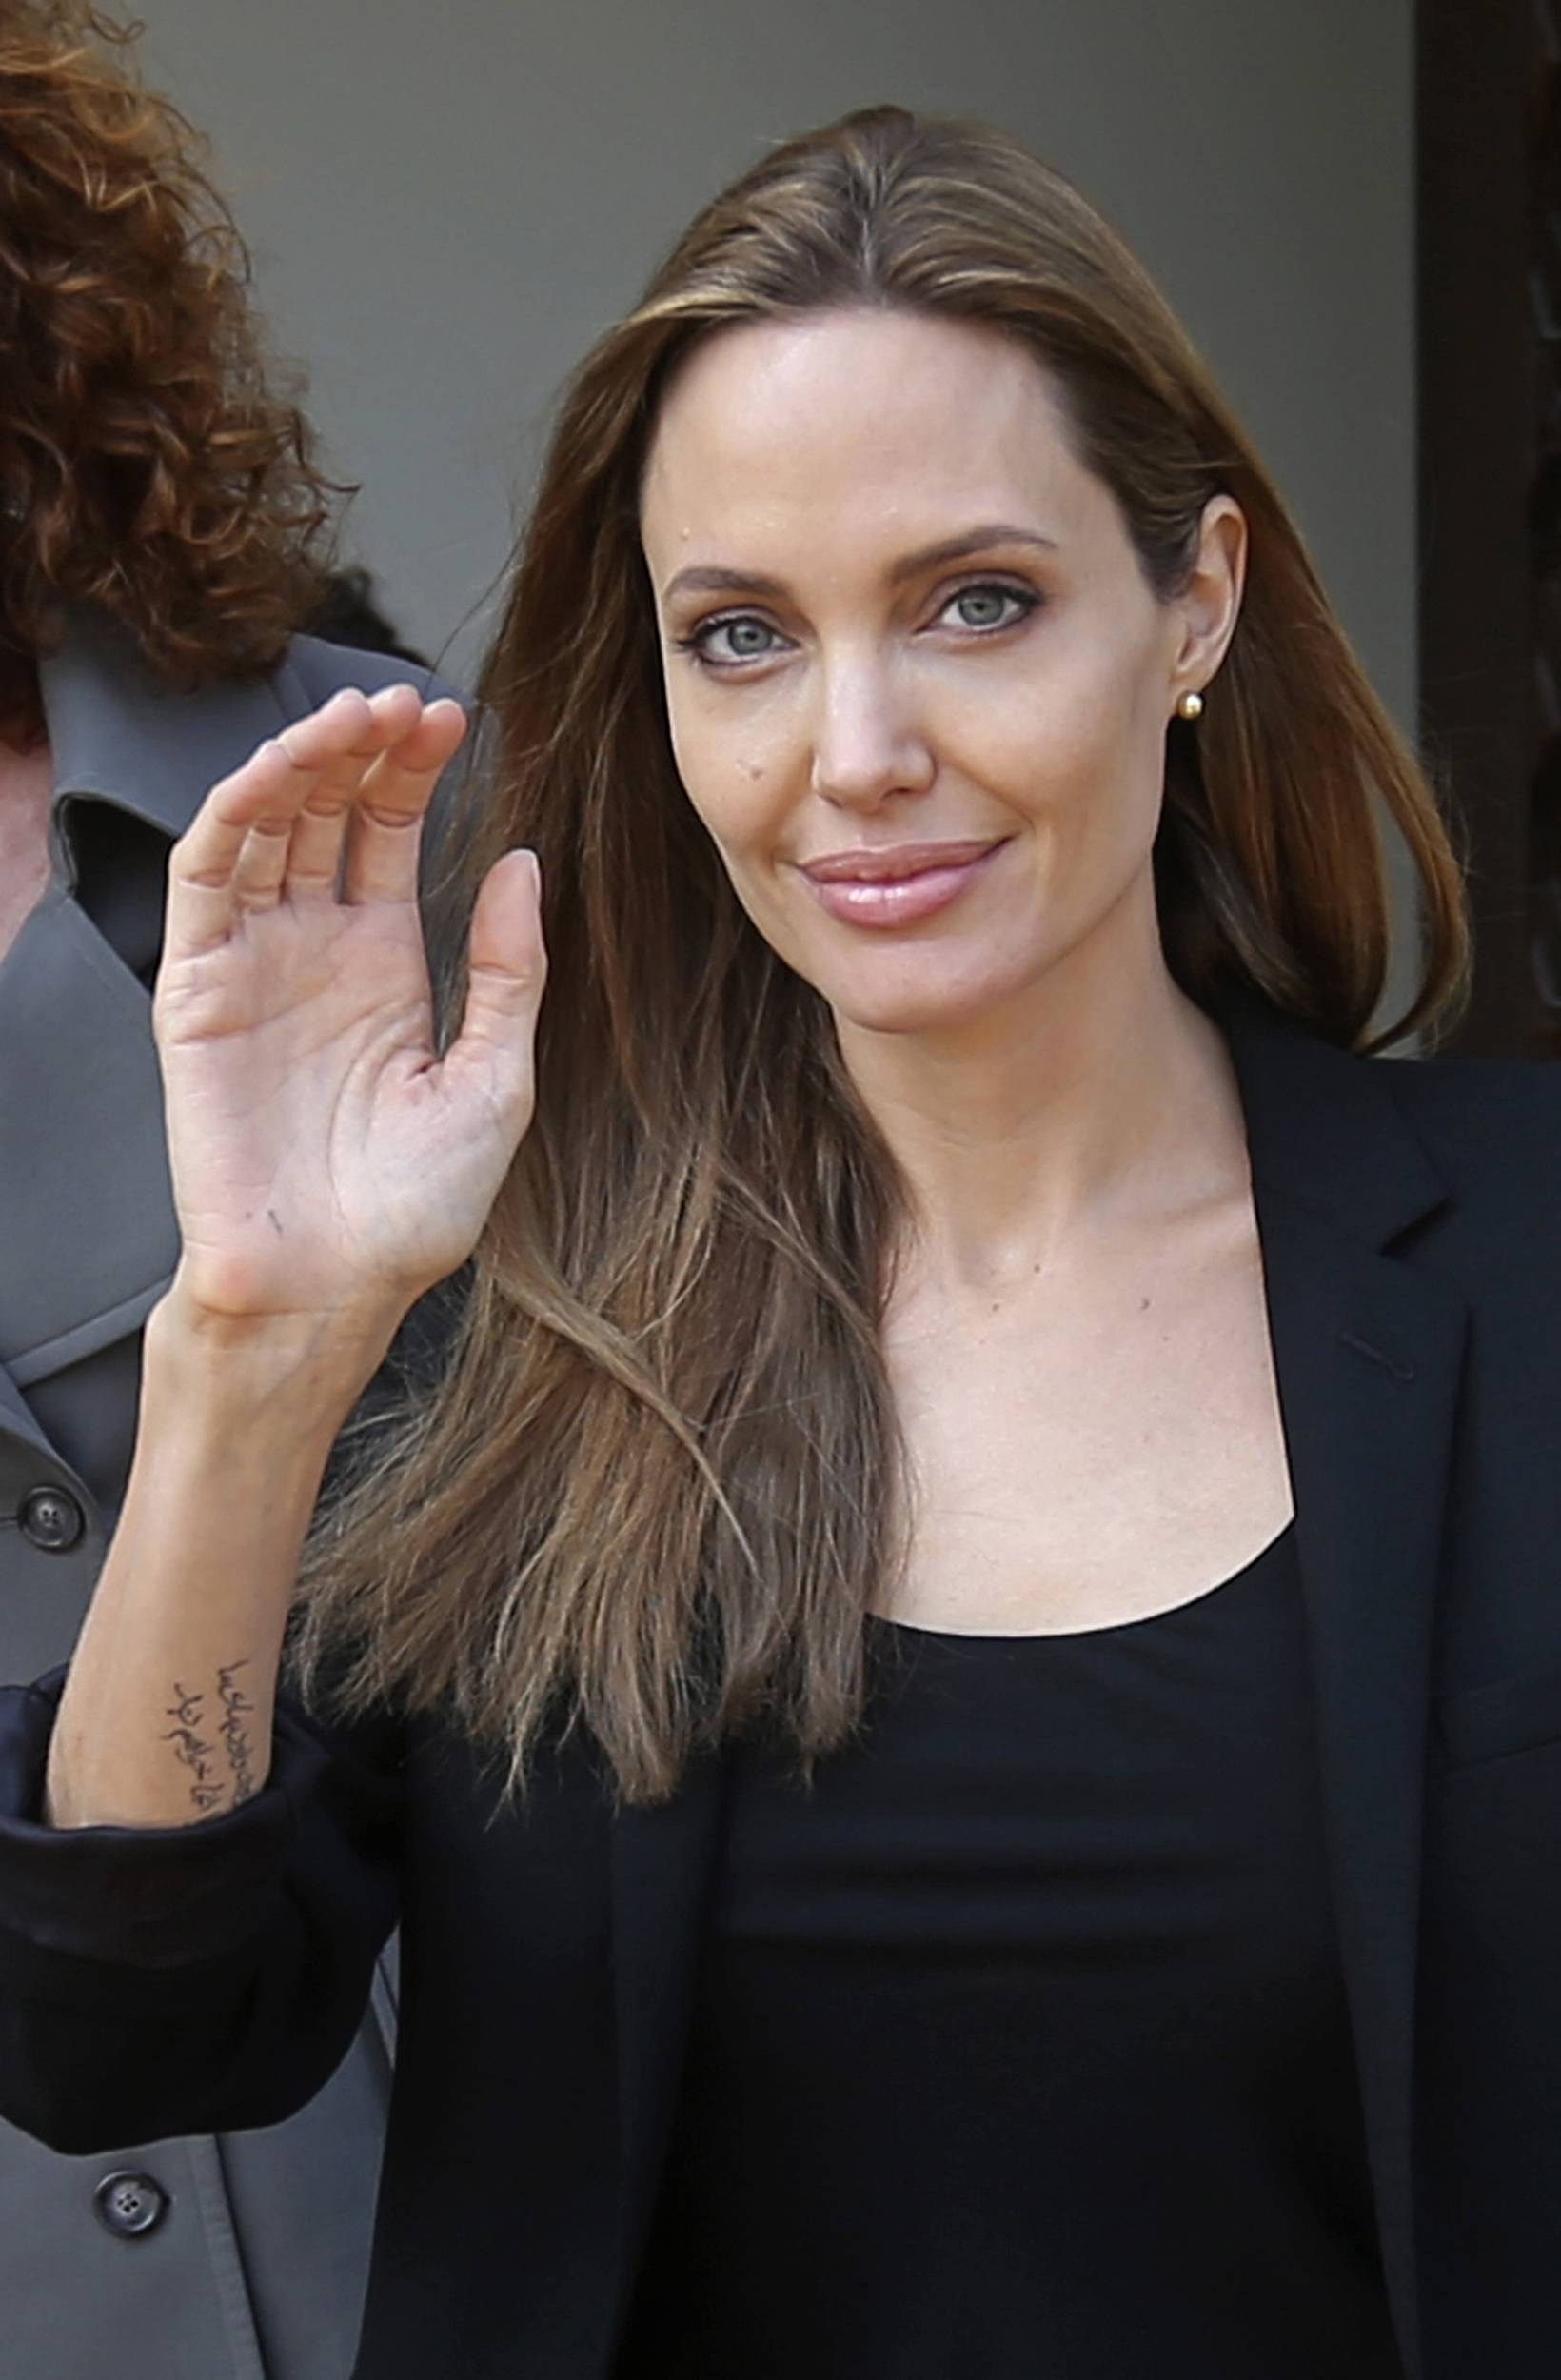 Actress Angelina Jolie generated headlines last year when she revealed she had a mastectomy to reduce her risk of inherited breast cancer. New research confirms that another kind of surgery, removing ovaries, is one of the most protective steps women who inherit faulty BRCA genes can take.